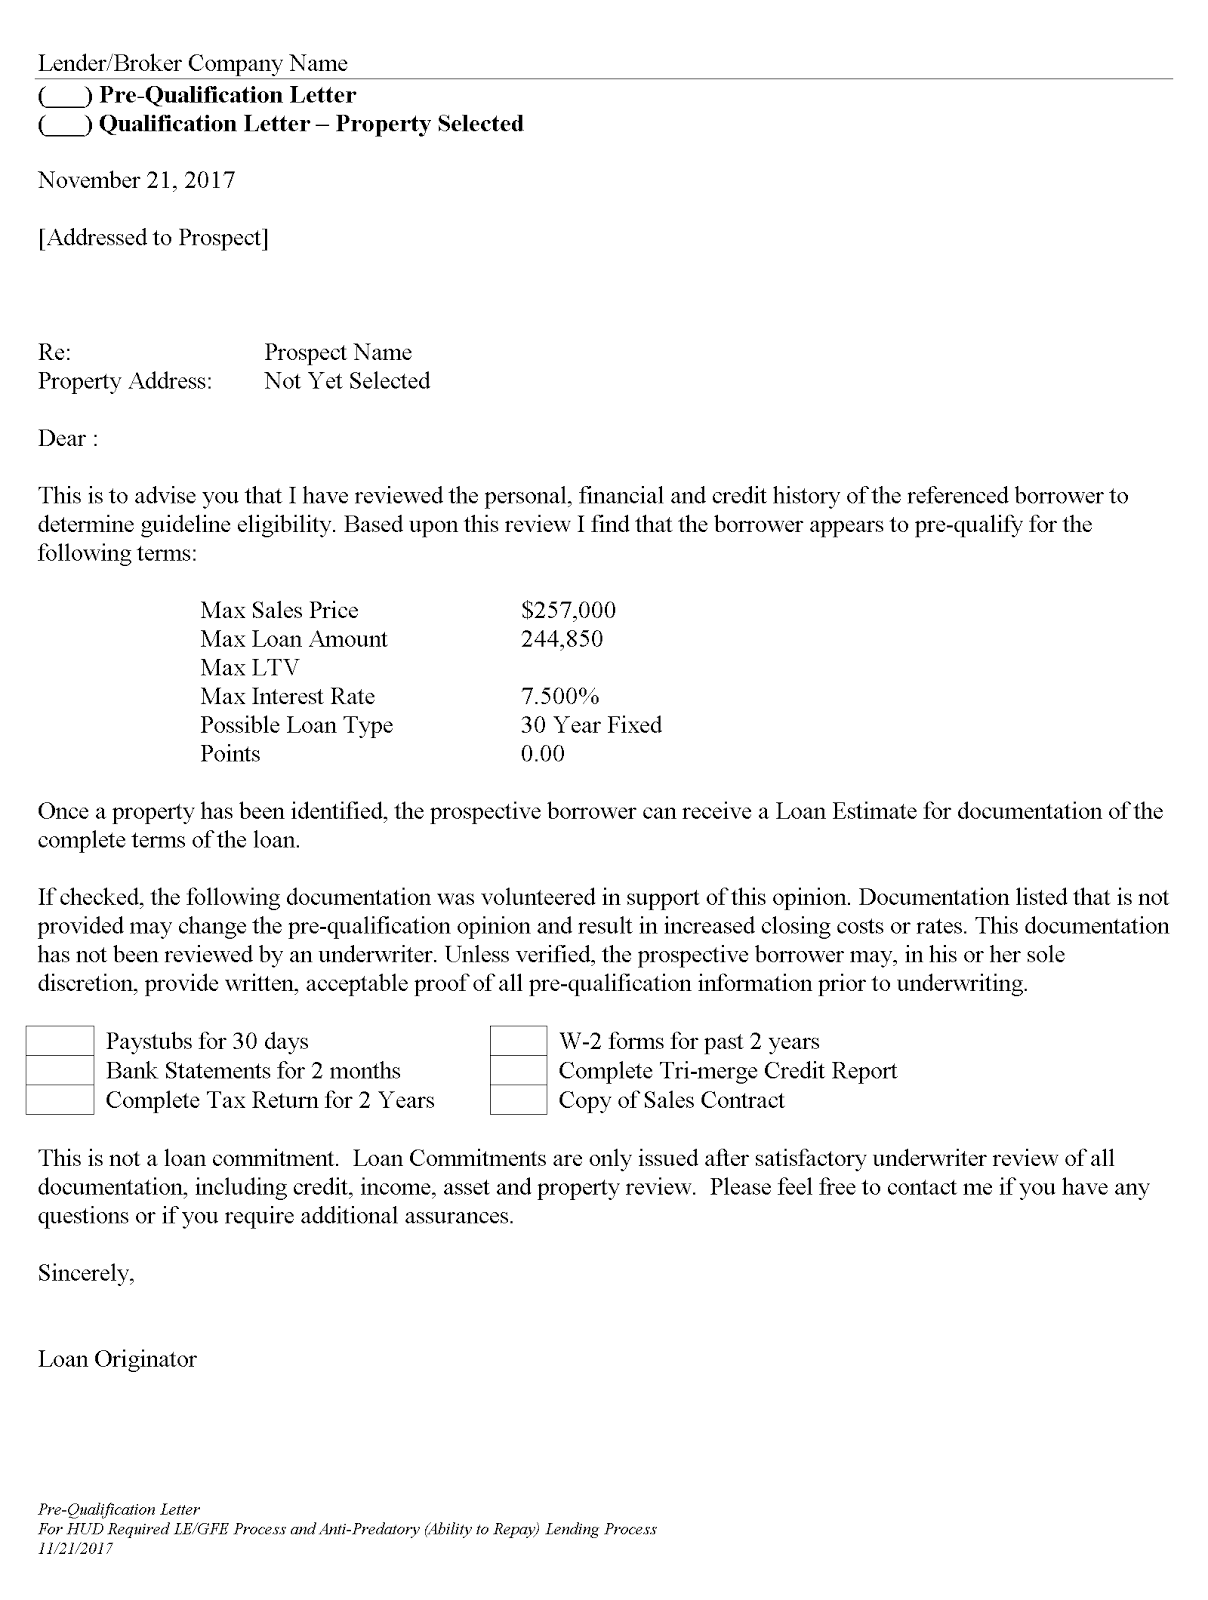 Pre Qualification Letter Without Credit Check